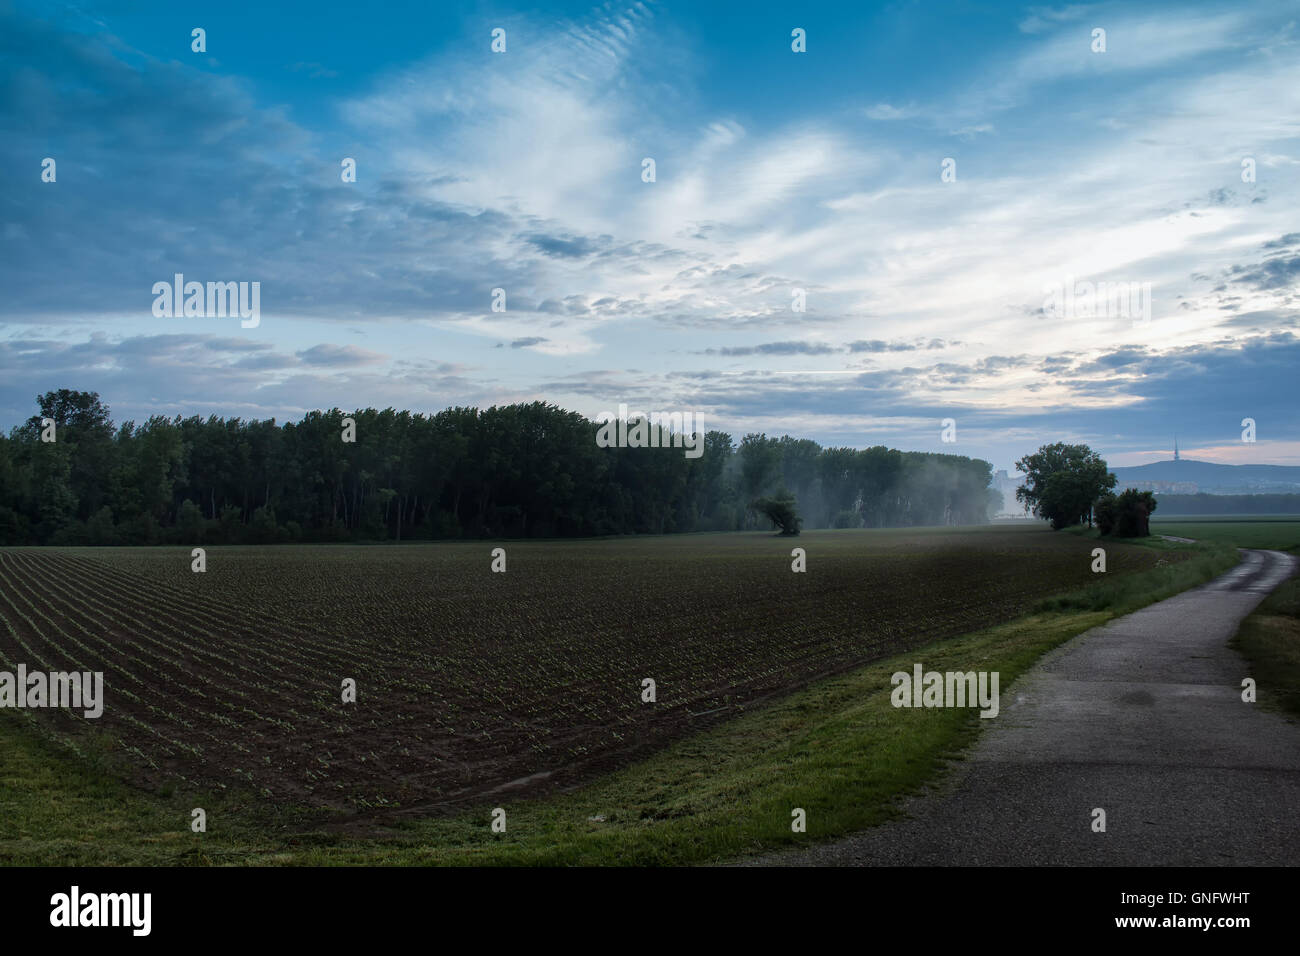 Early morning after a storm. Cloudy sky. Field with small spring cereals. A small forest at the end of the the field. - Stock Image